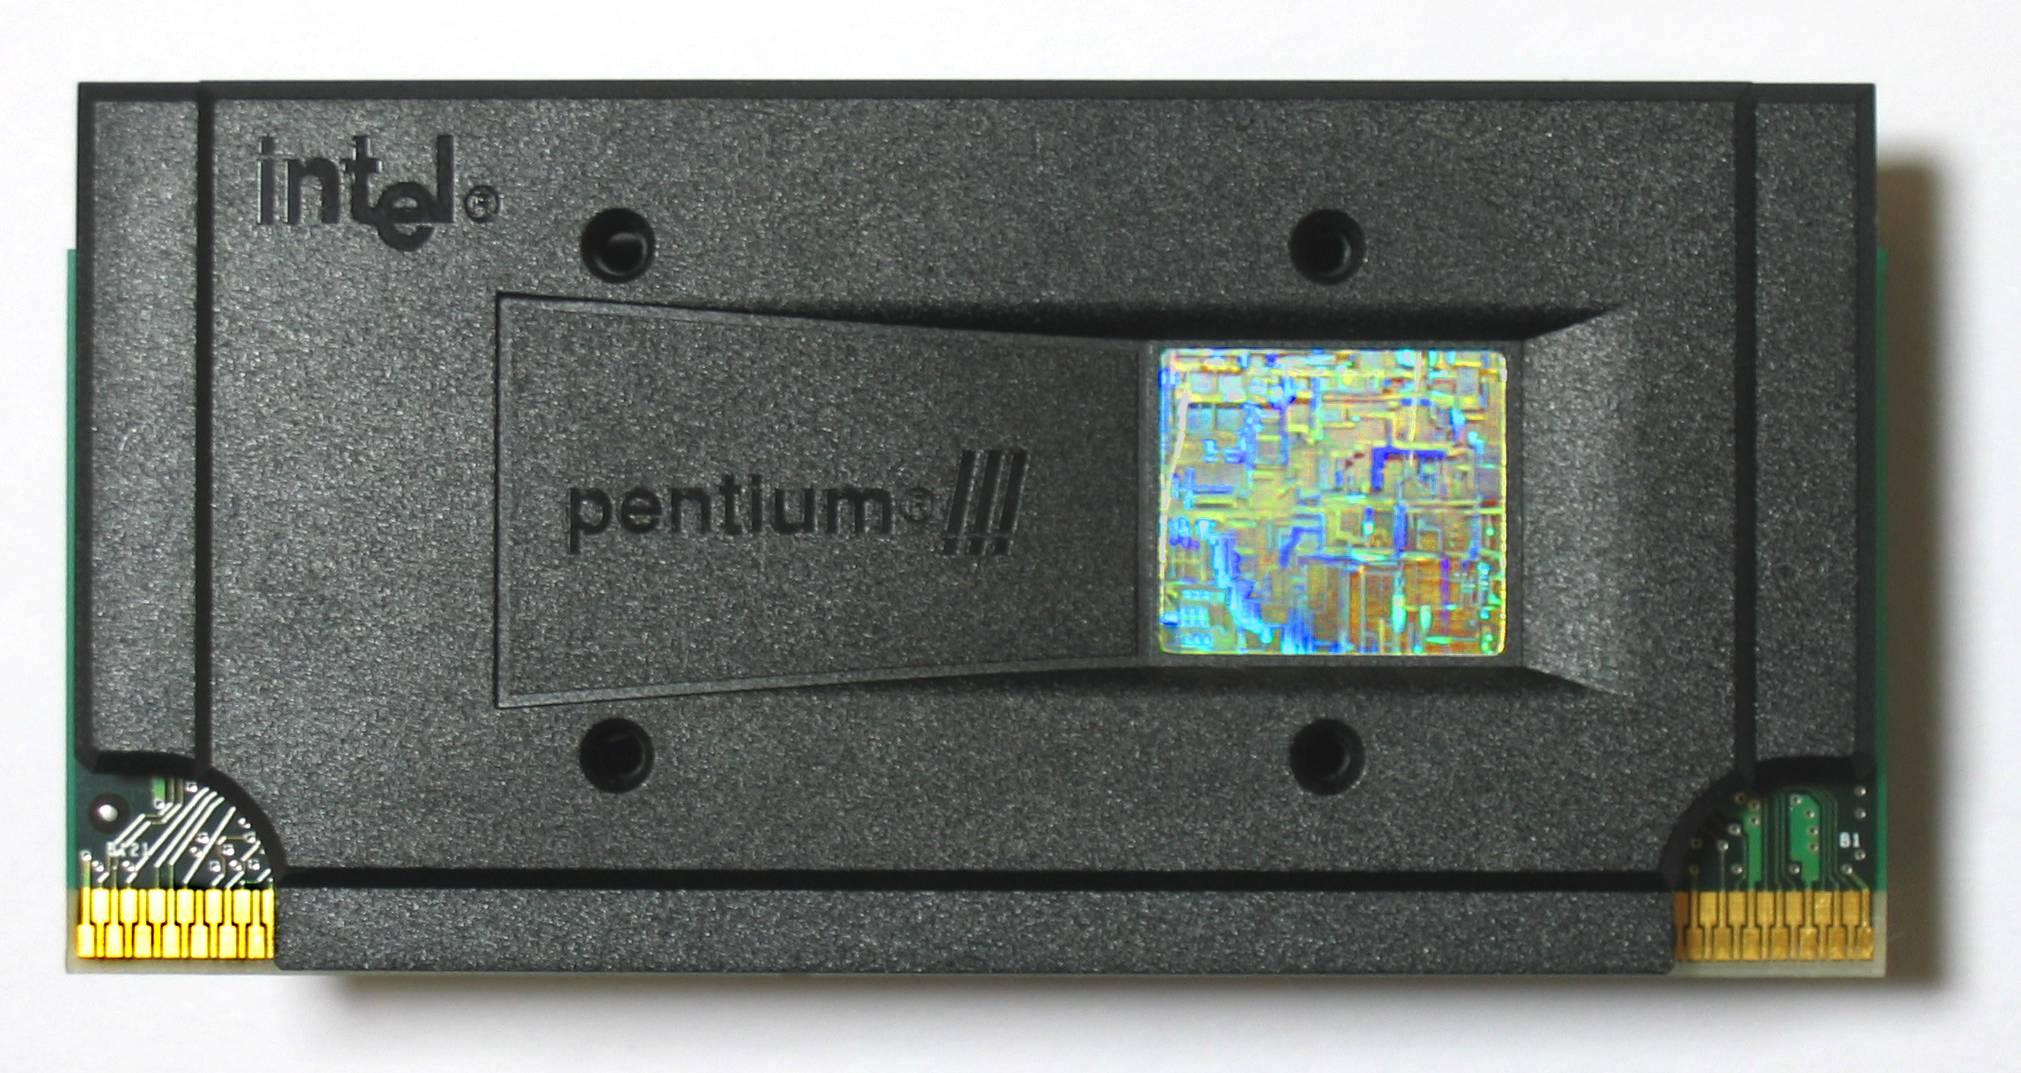 Description Intel Pentium III 733 MHz.jpg